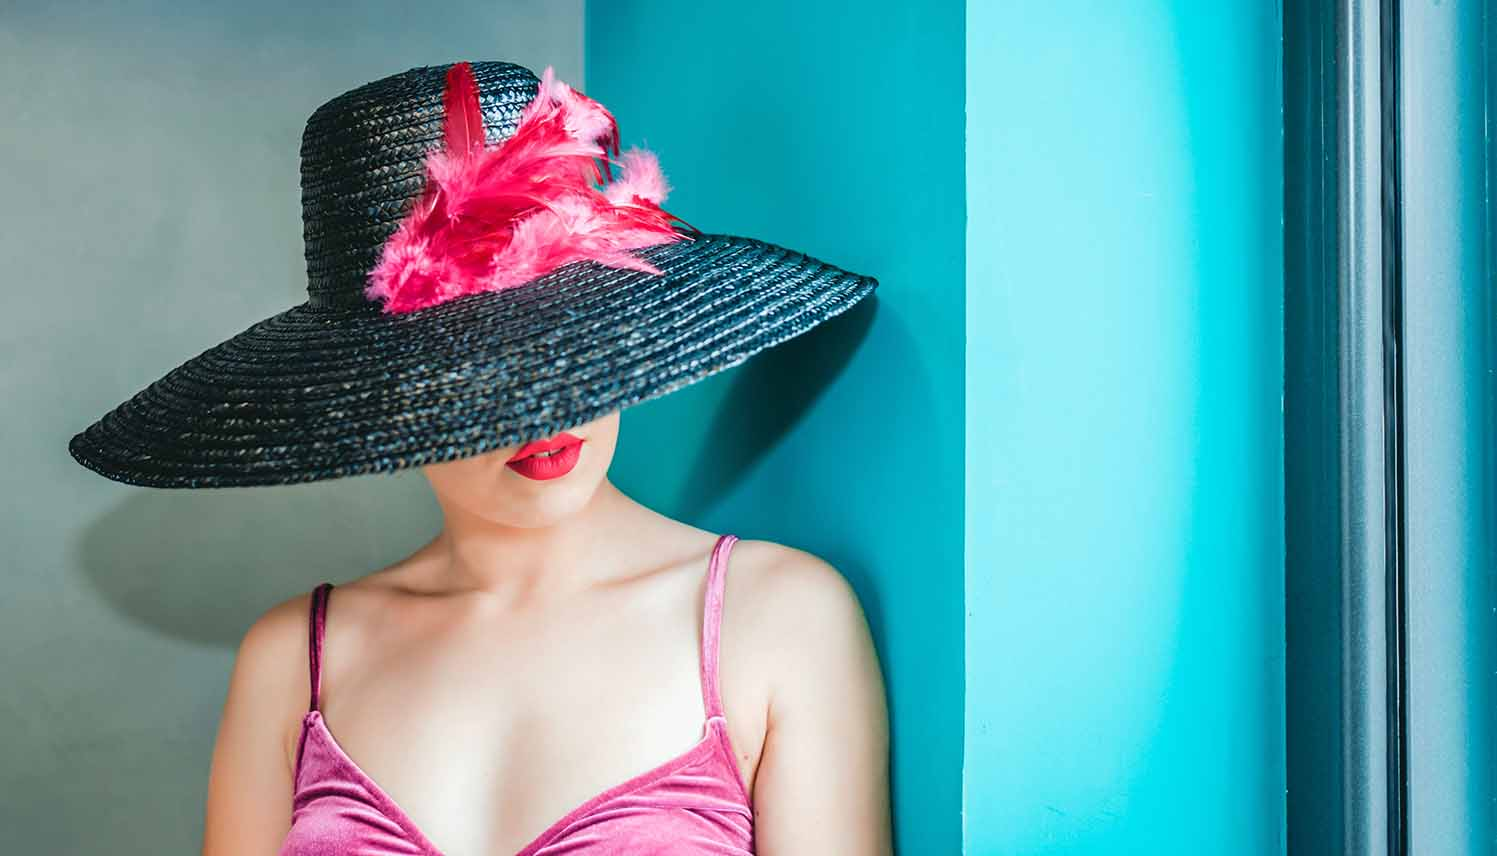 2 Simple Tips for Choosing a Flattering Hat